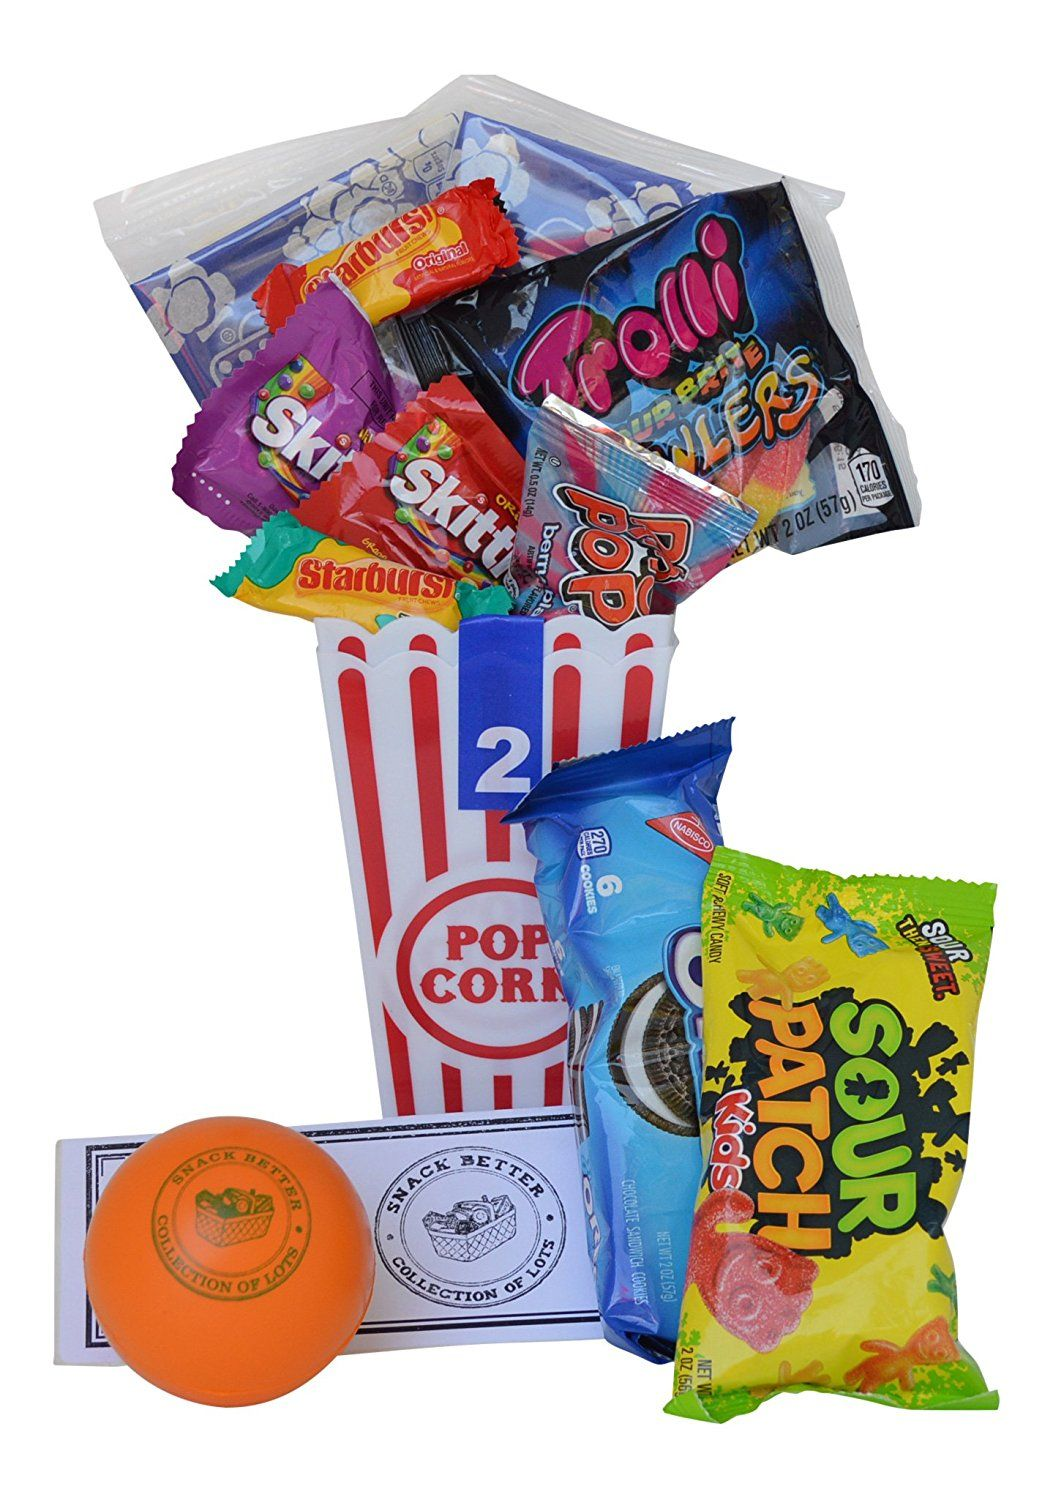 Movie night gift bundle care package easter basket christmas movie night gift bundle care package easter basket christmas birthday negle Gallery